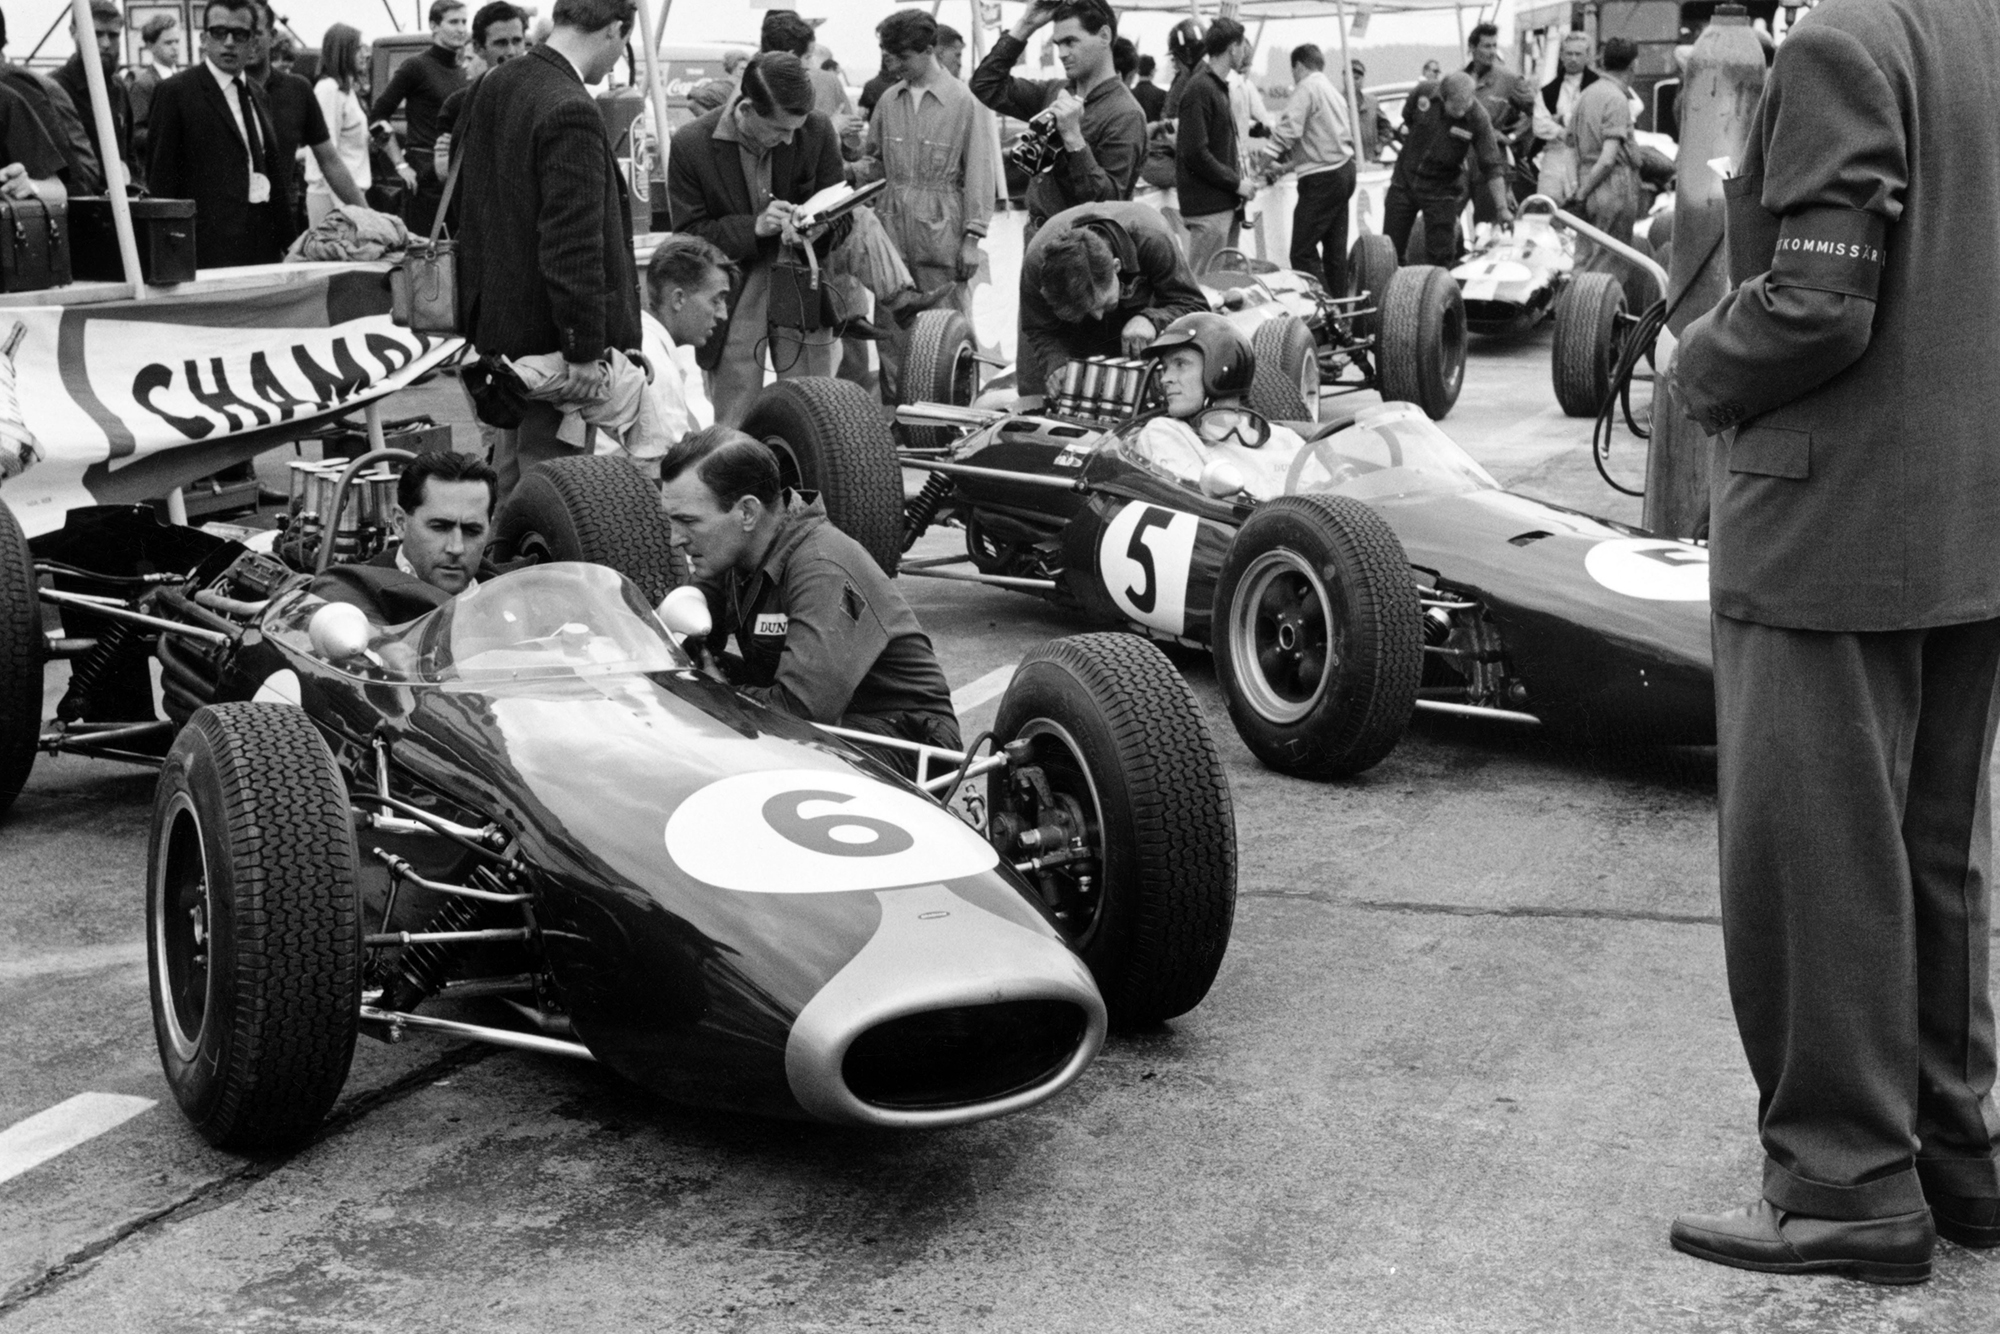 Jack Brabham (Brabham BT11 Climax) and Dan Gurney (Brabham BT7 Climax) wait in the pits